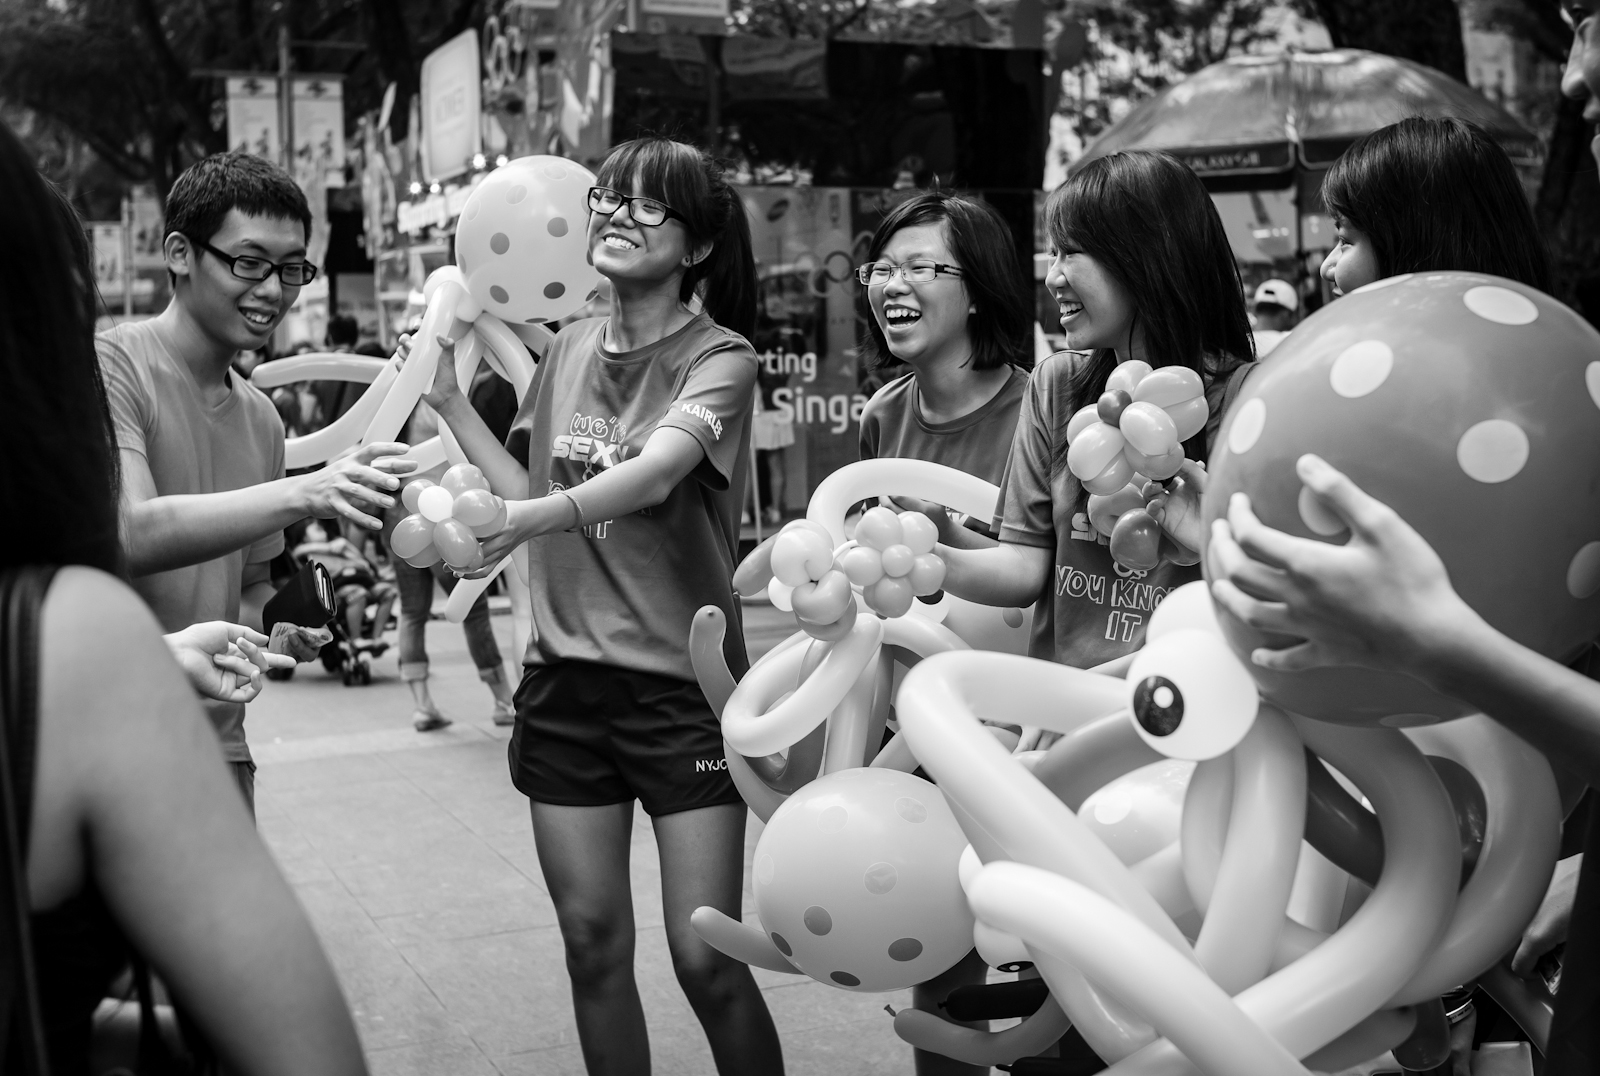 Boy buying a balloon sculpture from student volunteers